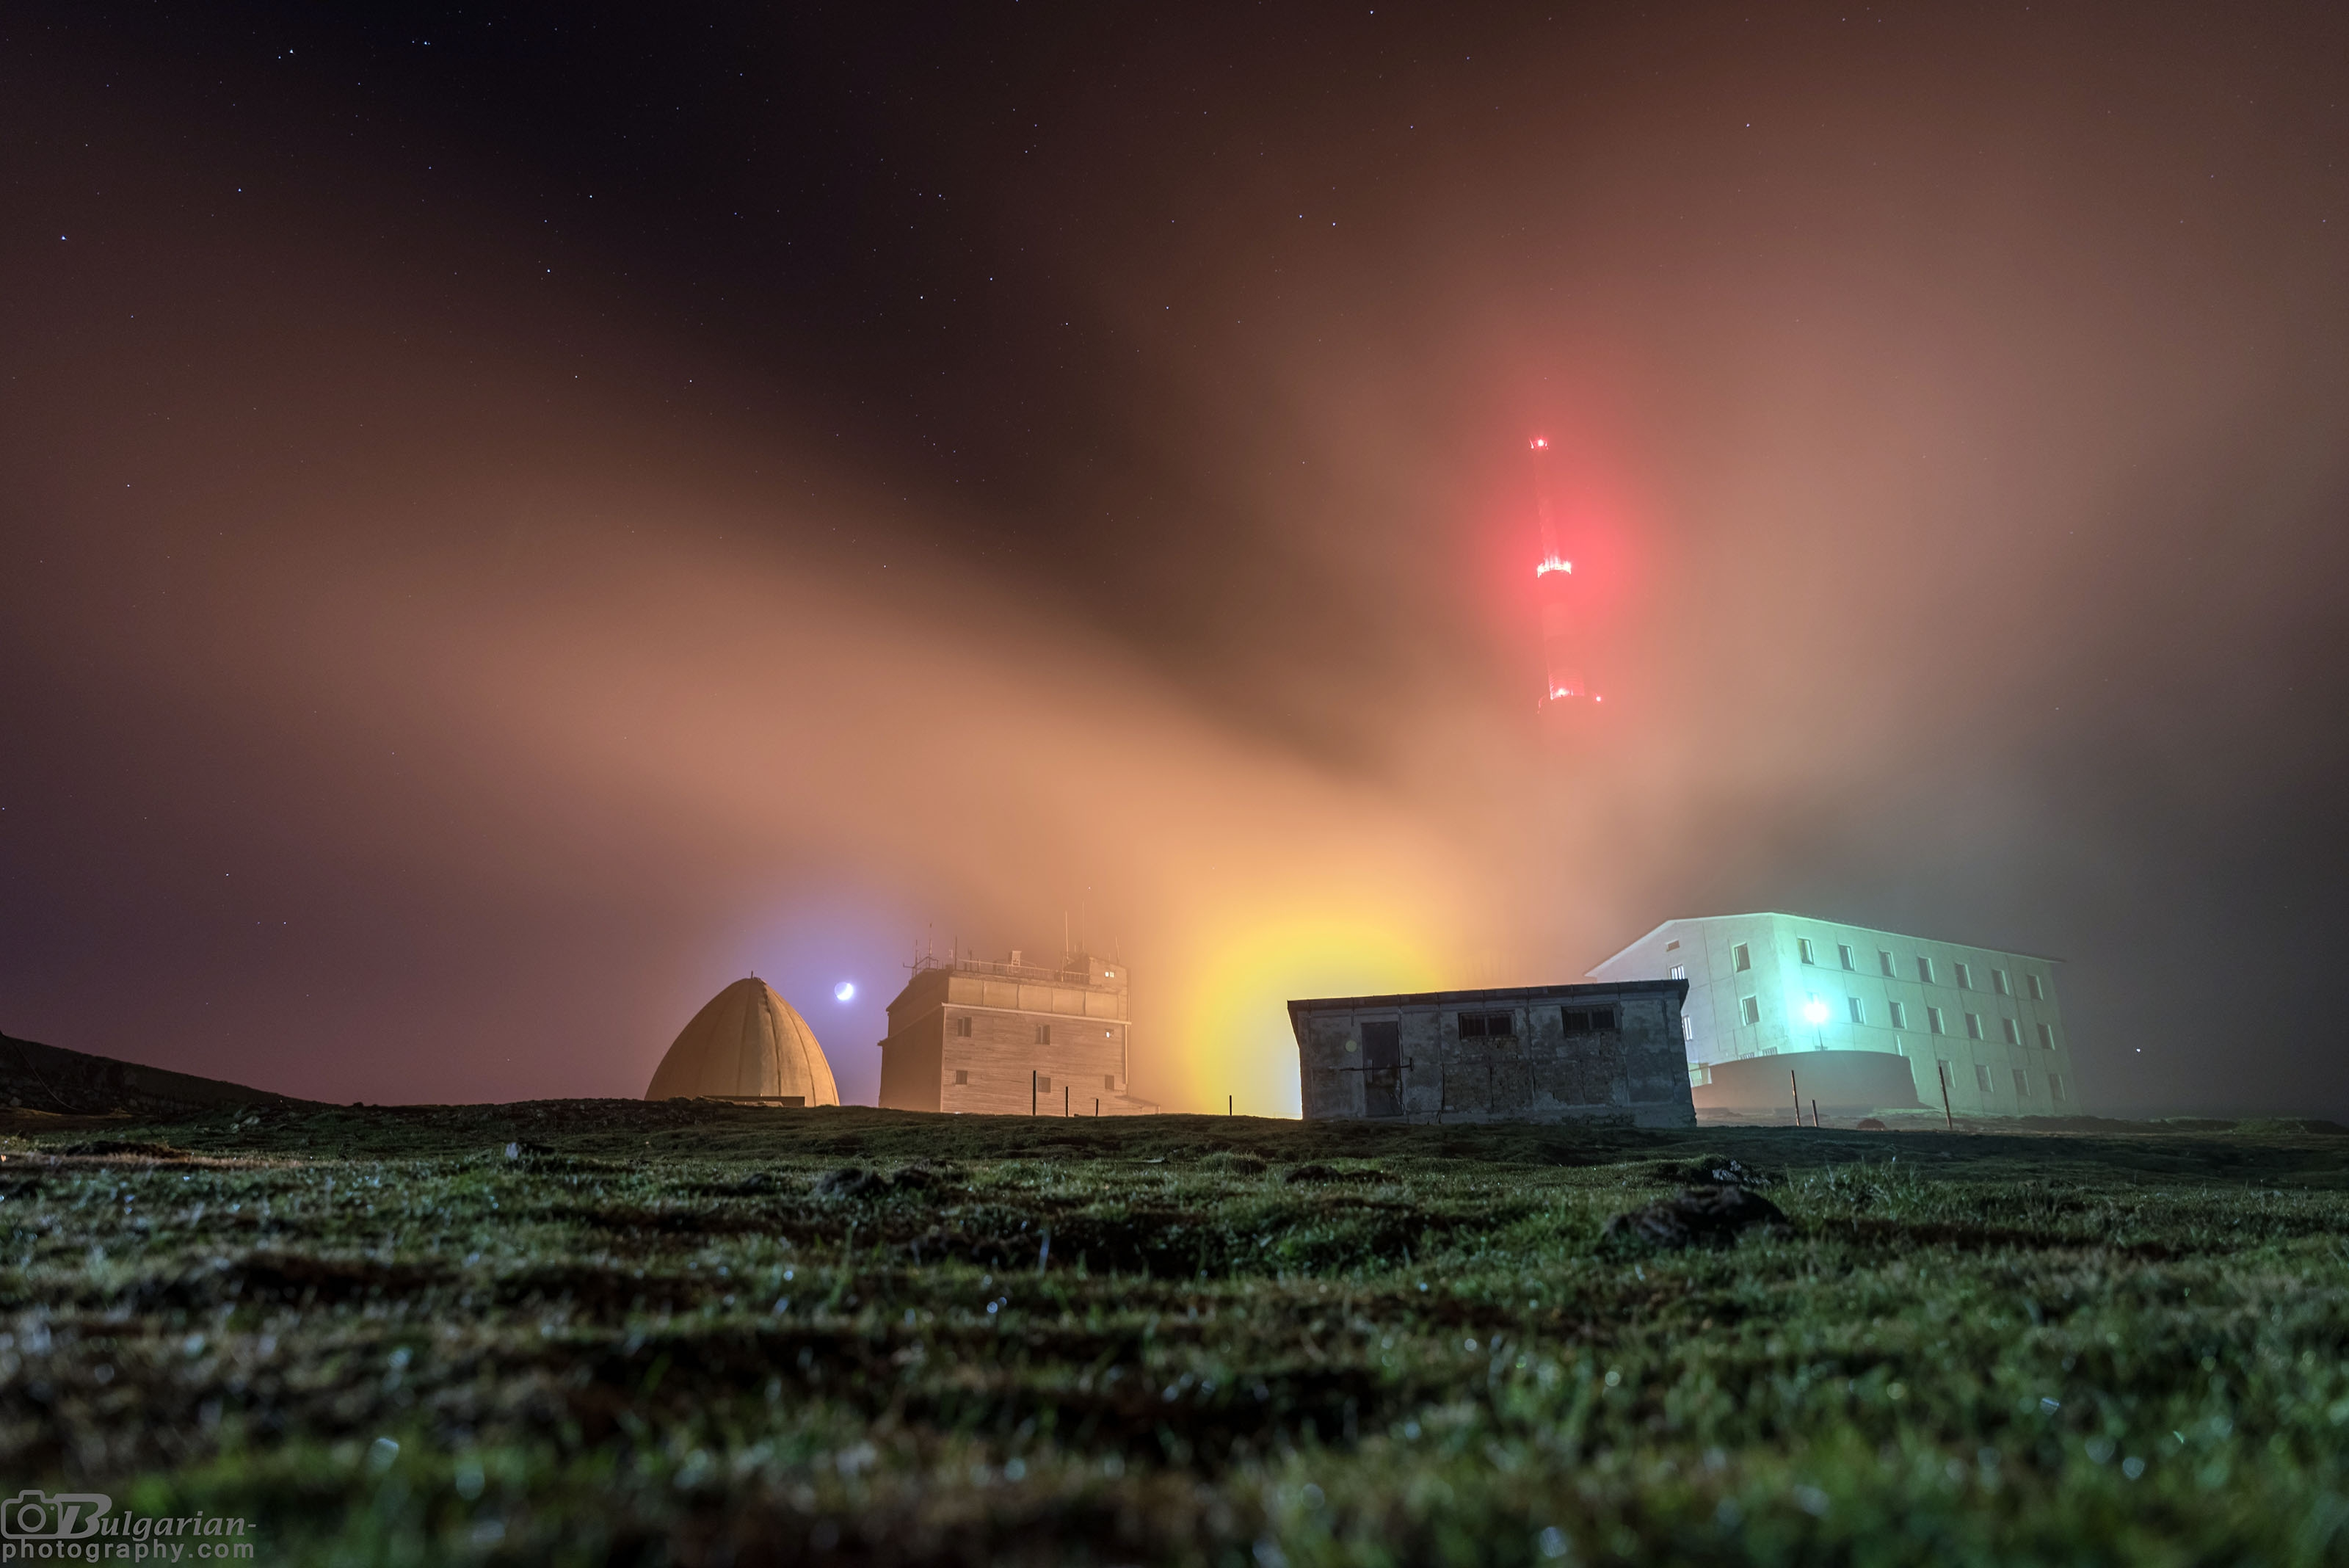 Misty night at Botev peak